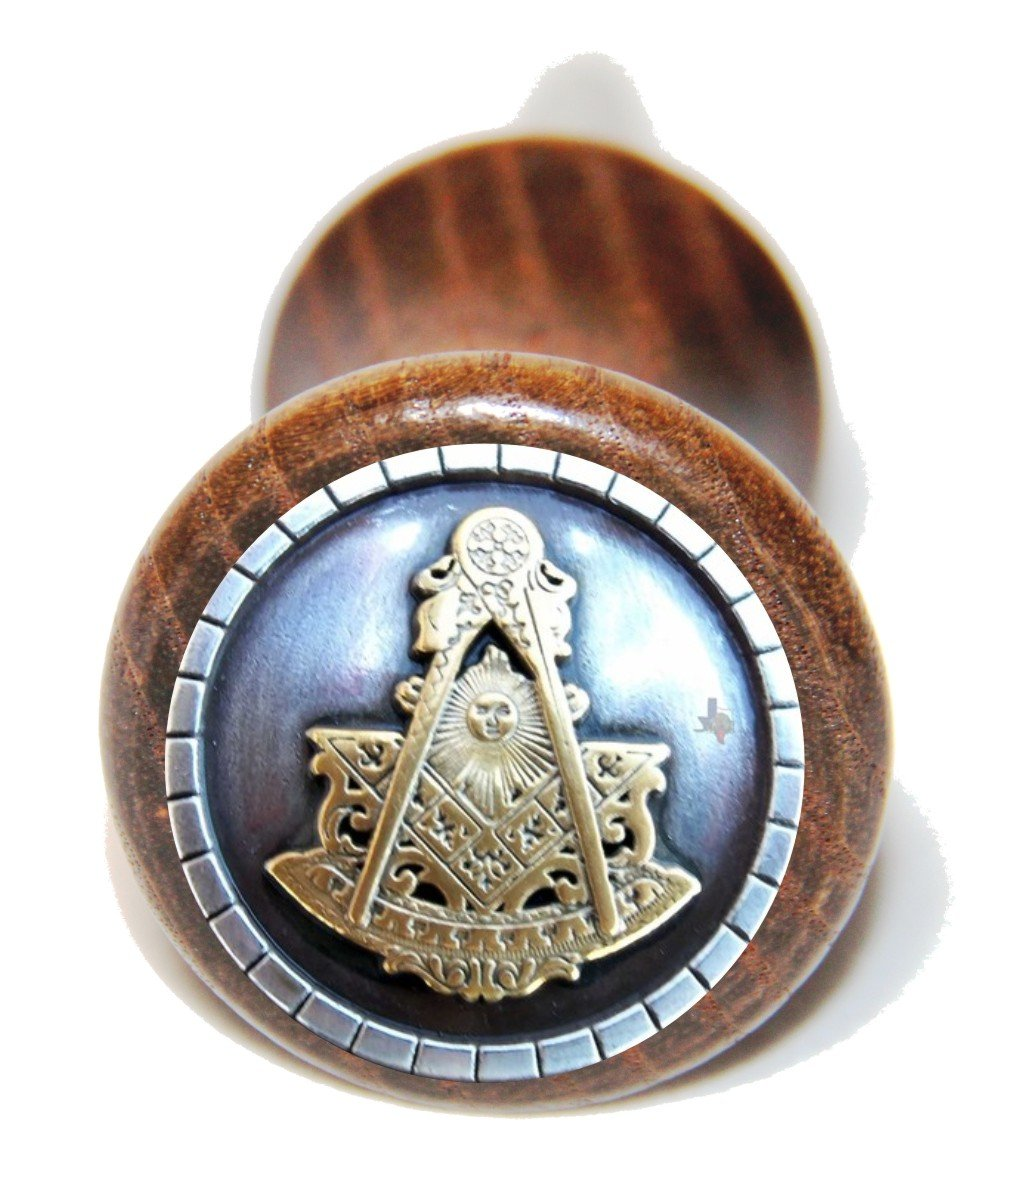 Custom Masonic Past Master wine bottle stopper by Genuine Texas Brand